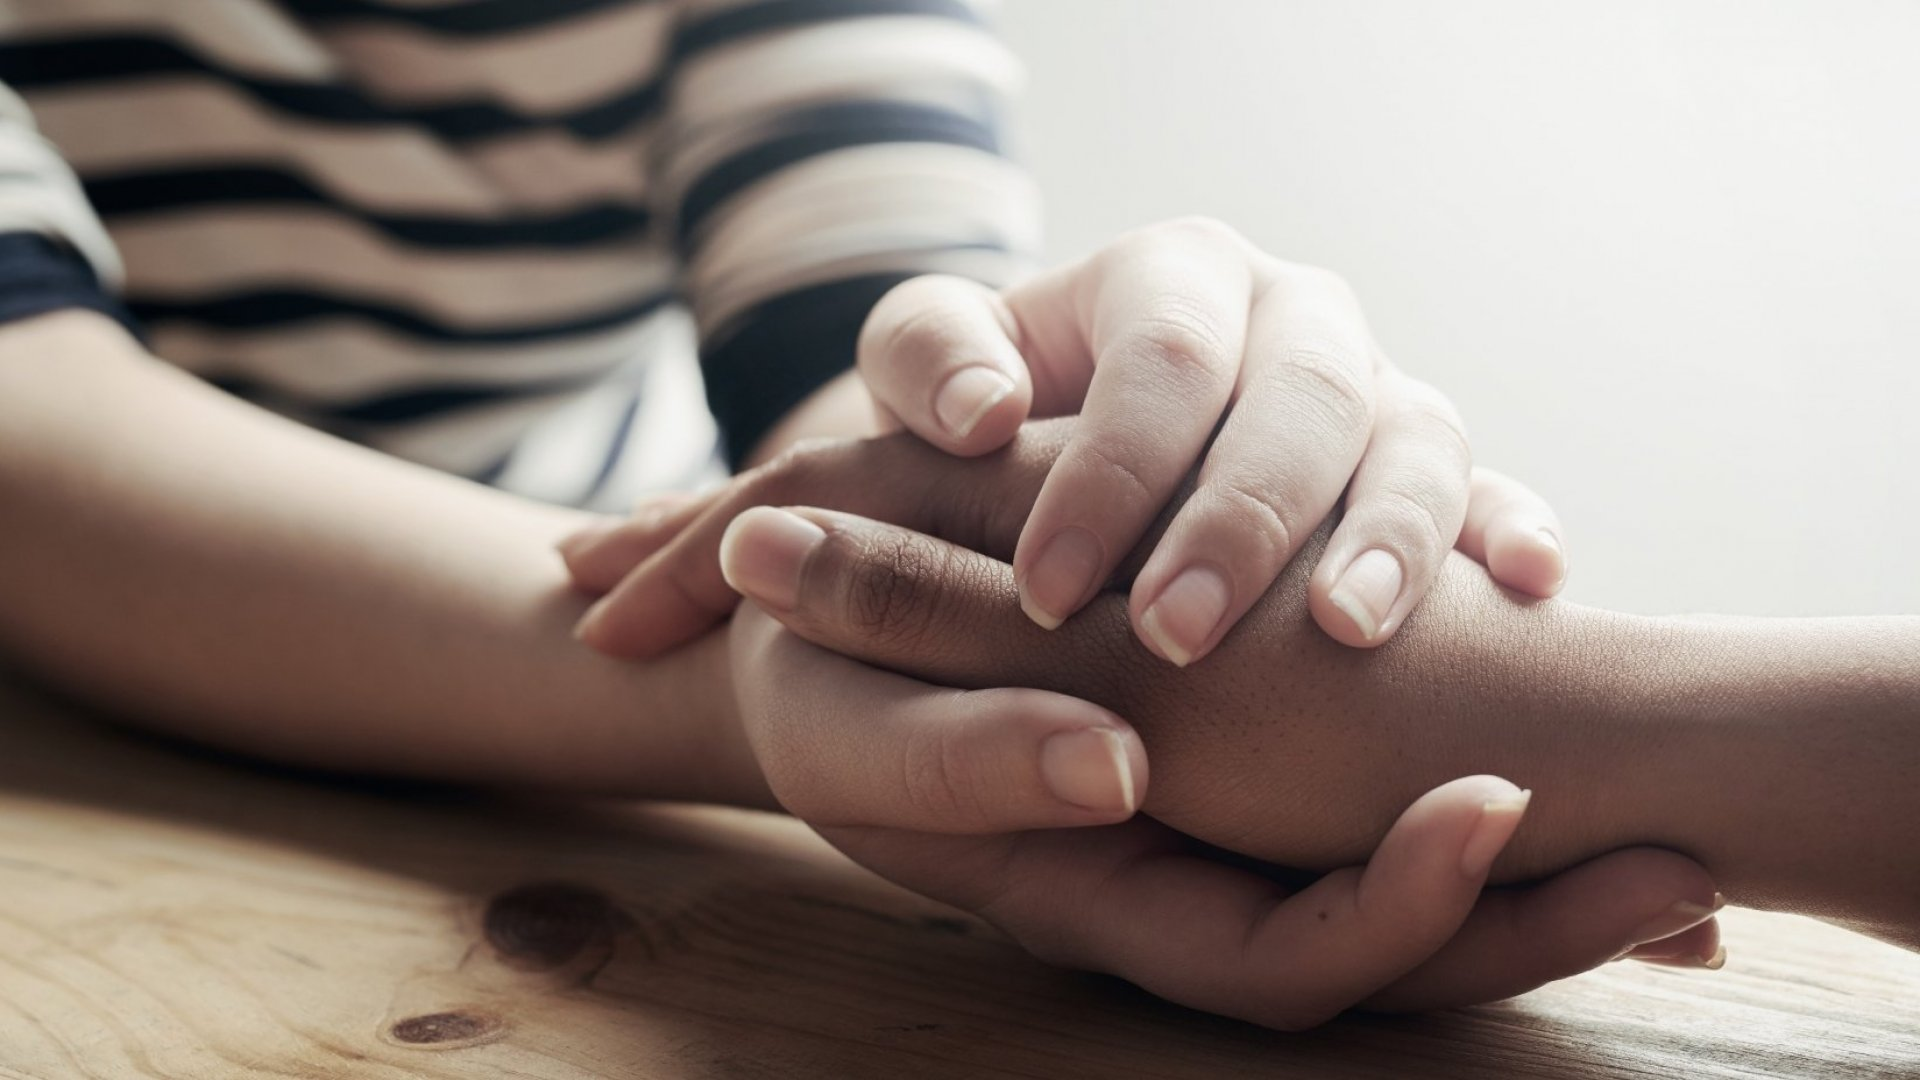 Being Highly Empathetic Has a Serious Dark Side, New Science Says